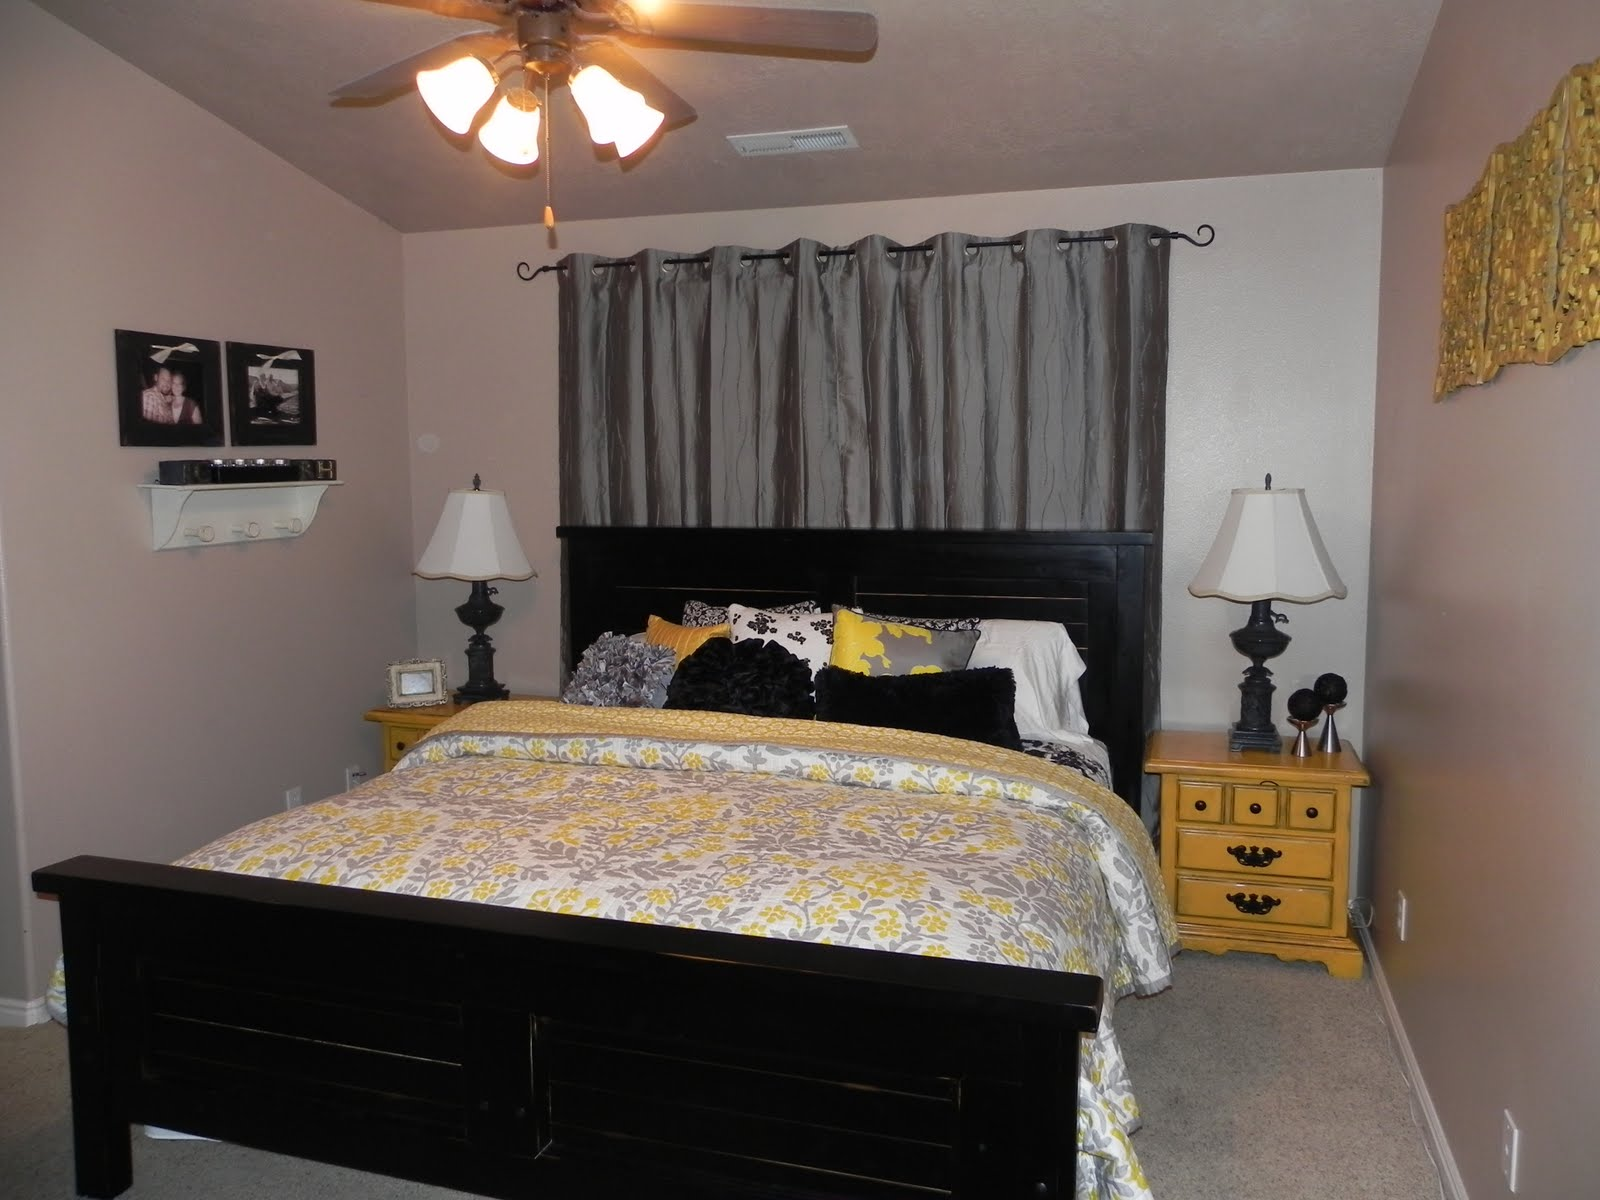 Bedroom Design Grey And Yellow Yellow And Gray Master Bedroom By Chelsea Feature Friday